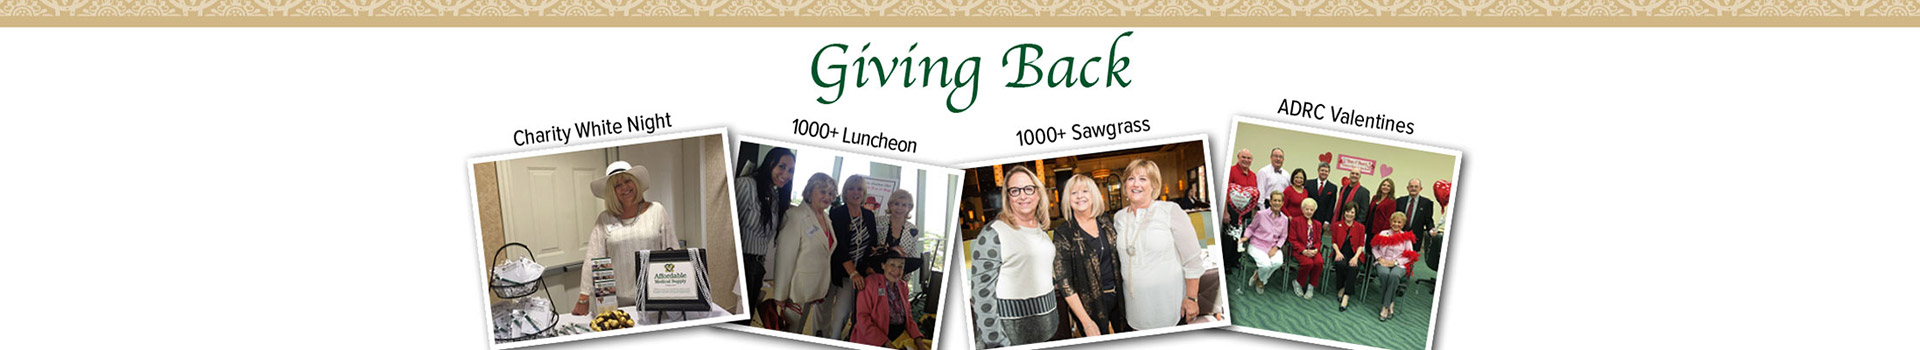 giving-back-2-of-2